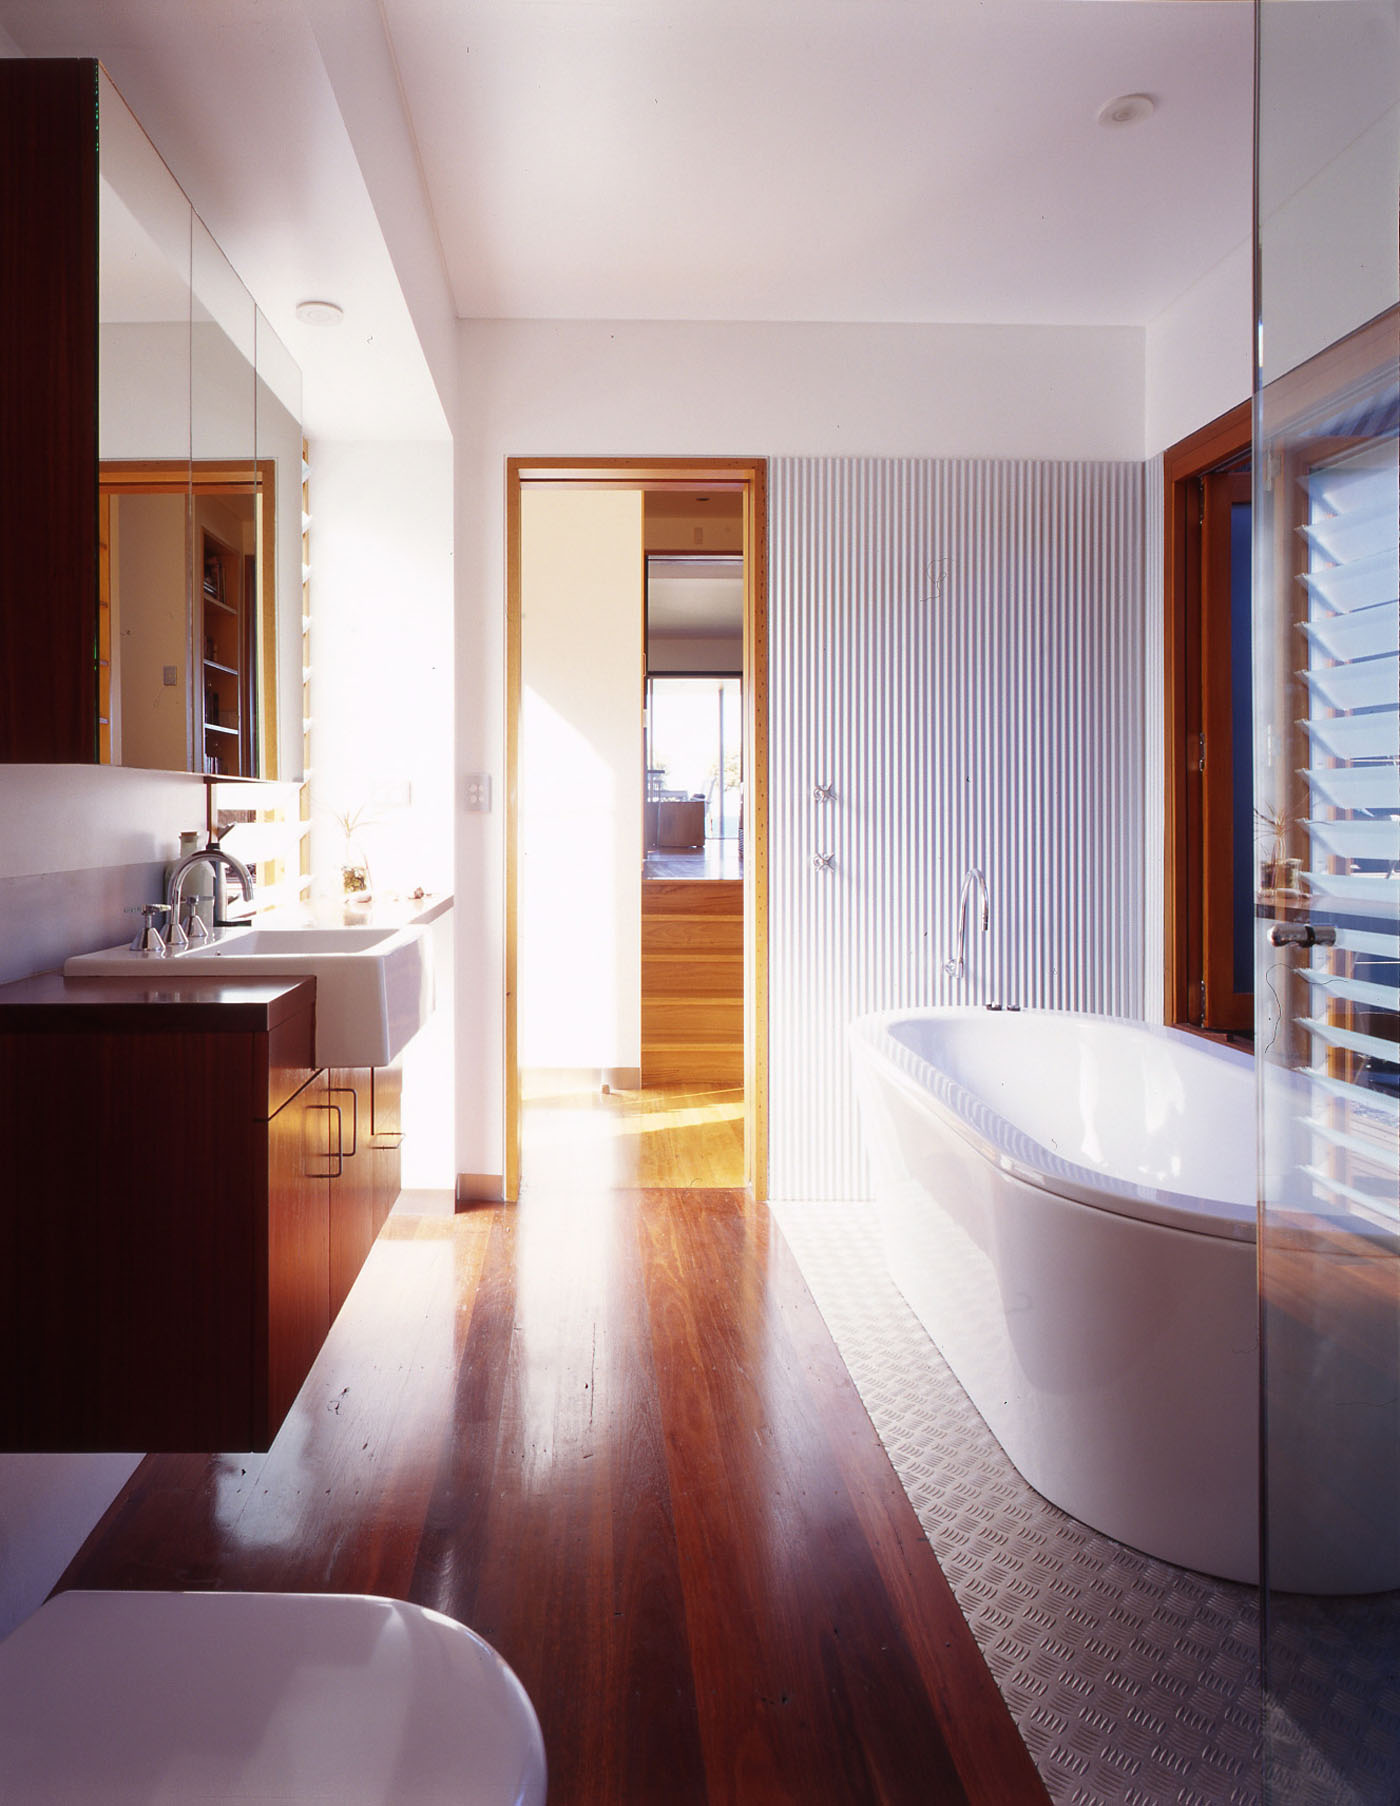 Bundeena Beach House by Sydney award winning residential architecture firm Sam Crawford Architects. View to light-filled bathroom with stamp and corrugated steel.